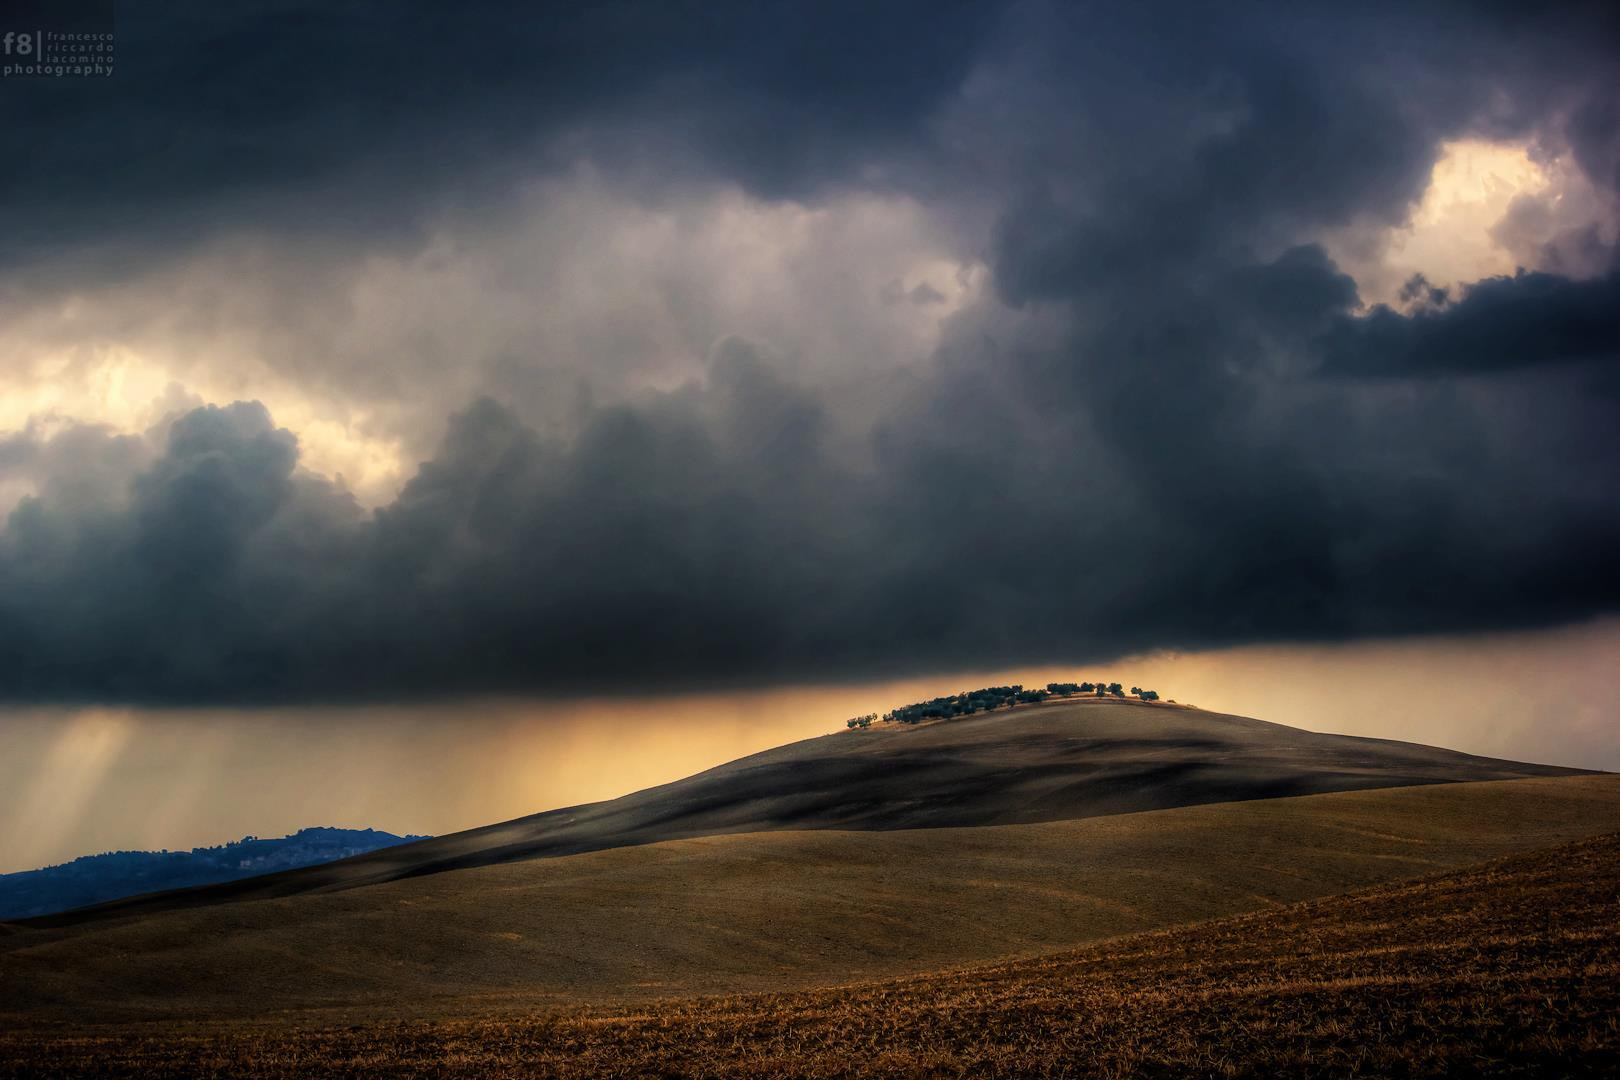 Photograph Stormy Weather by Francesco Riccardo Iacomino on 500px